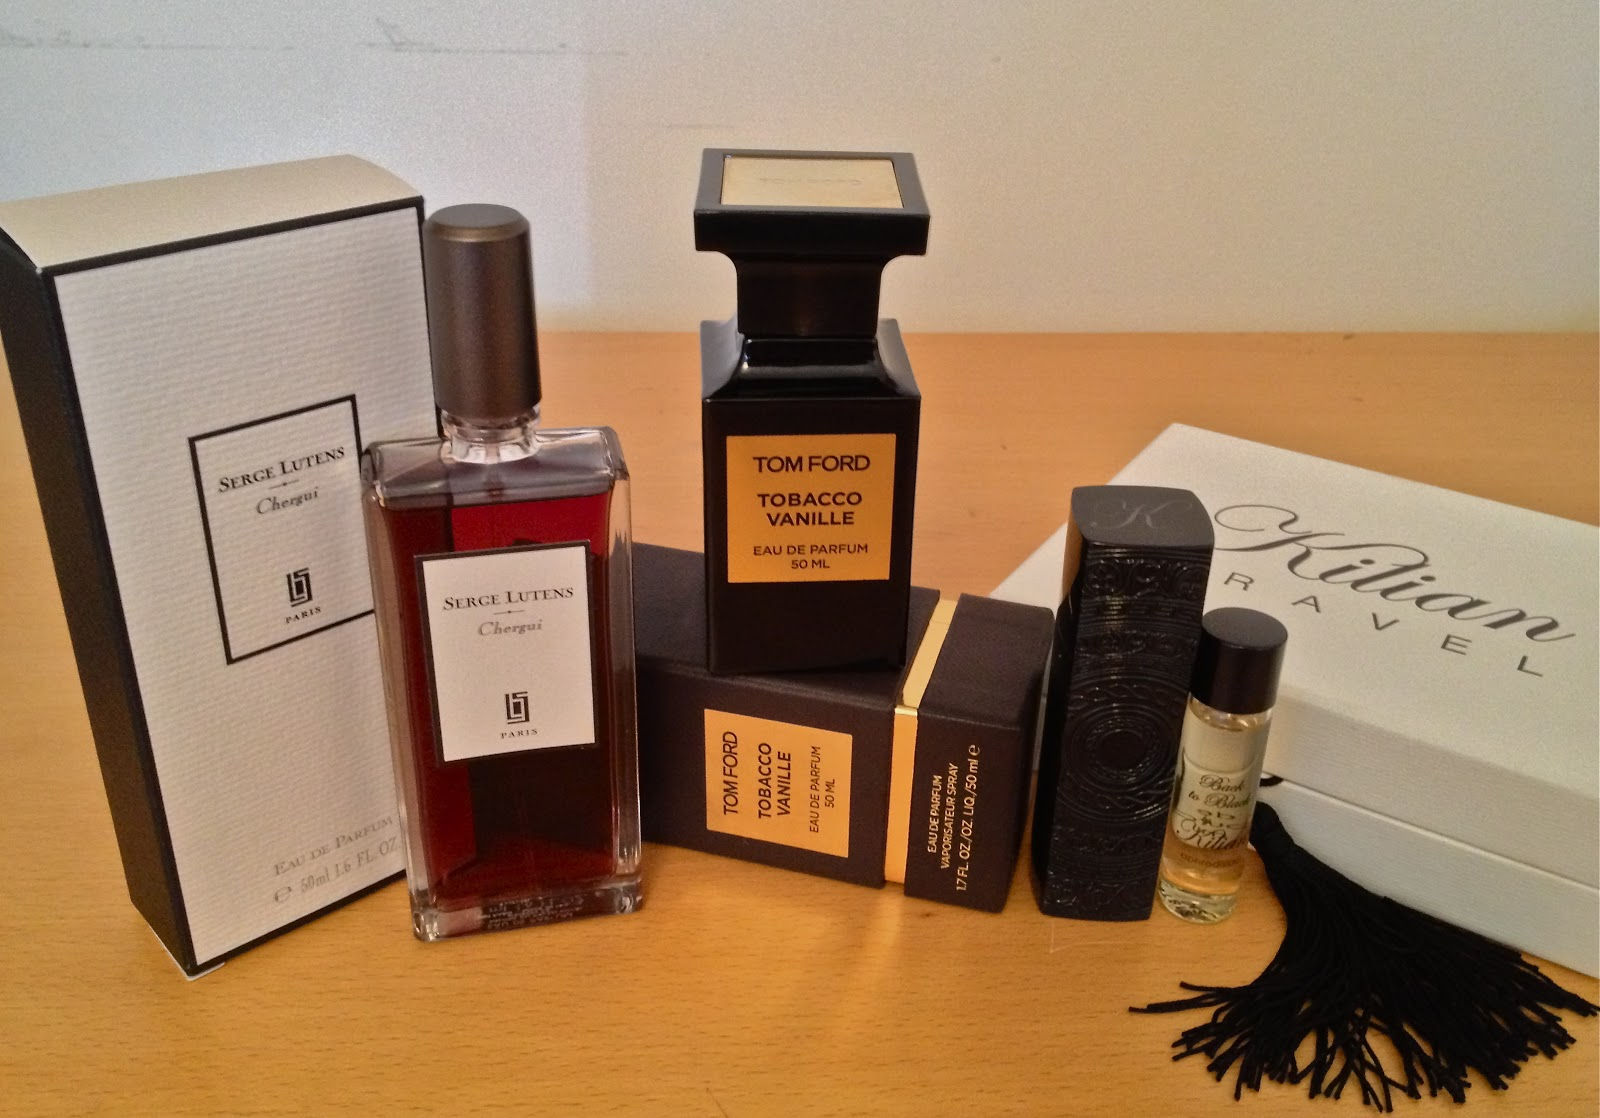 My Perfume Diaries Back To Black Vs Chergui Vs Tobacco Vanille